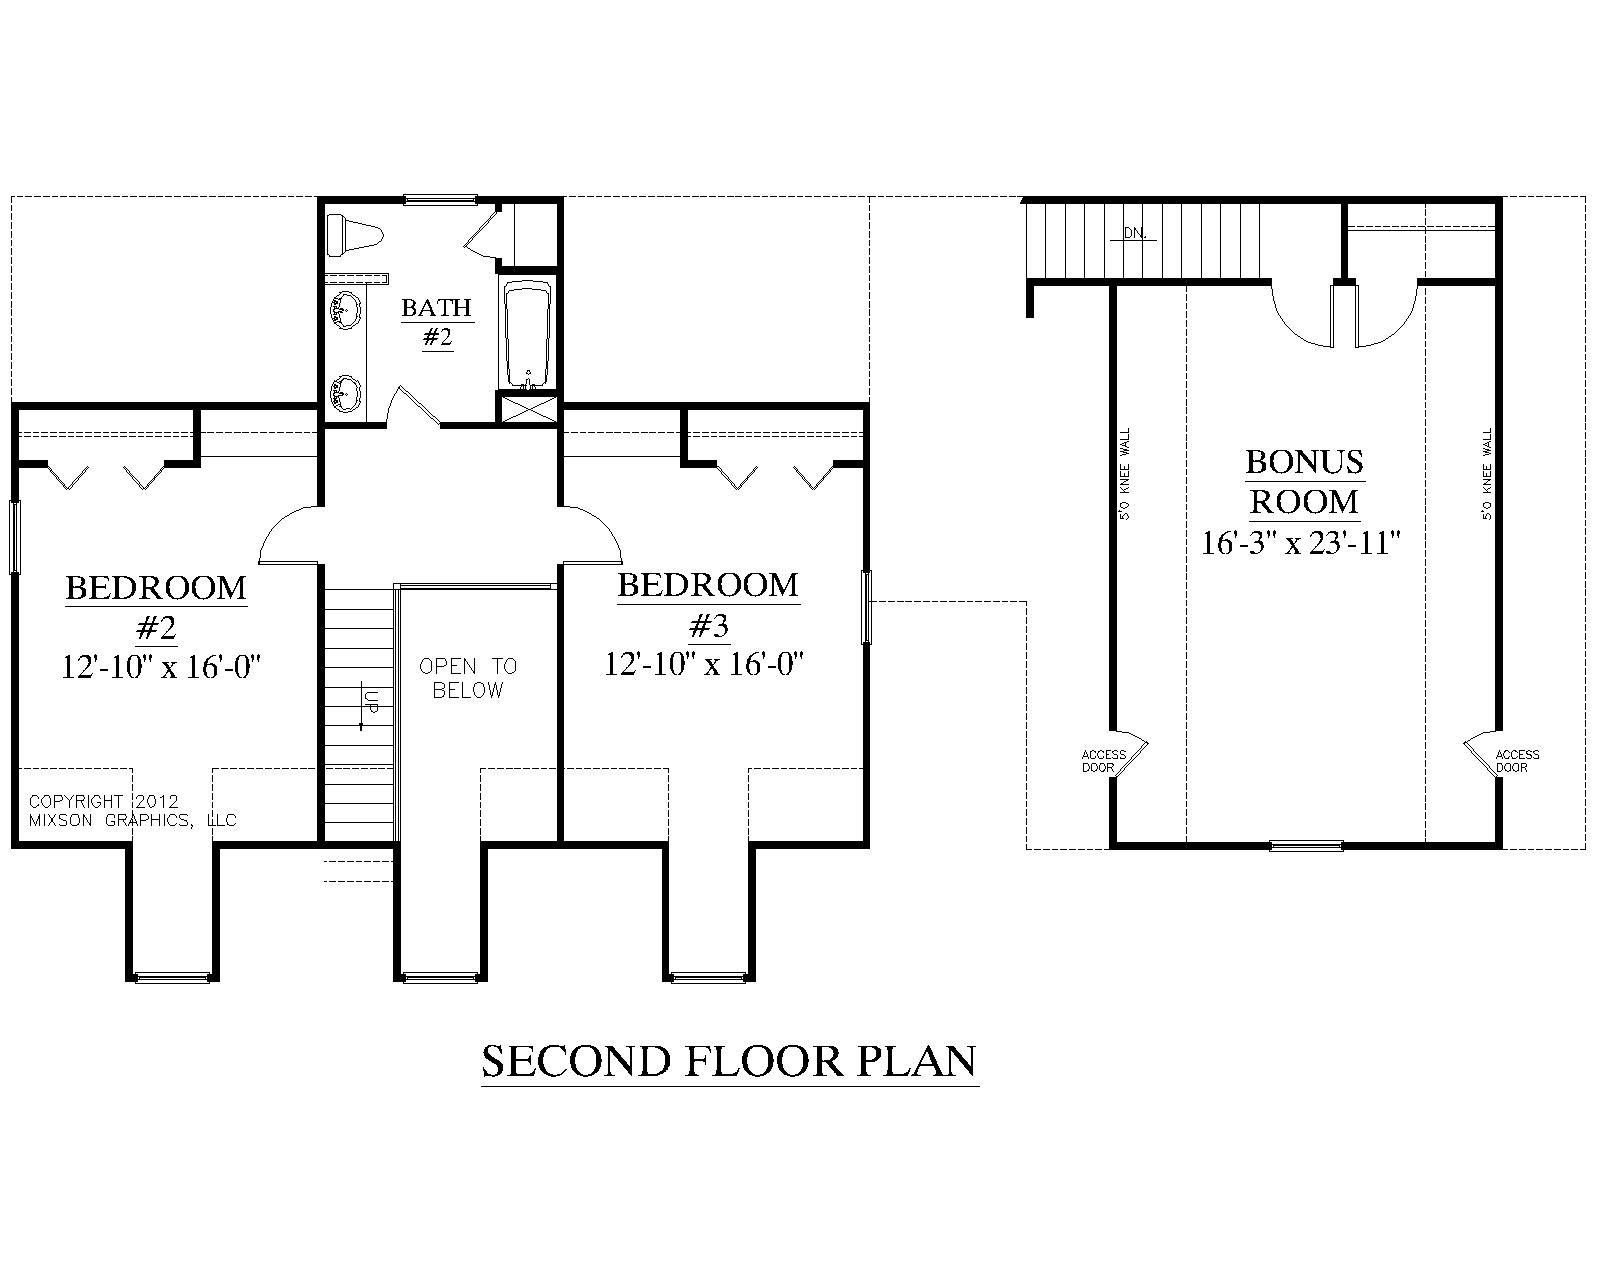 House plan 2091 b mayfield b second floor plan for Second floor design plans